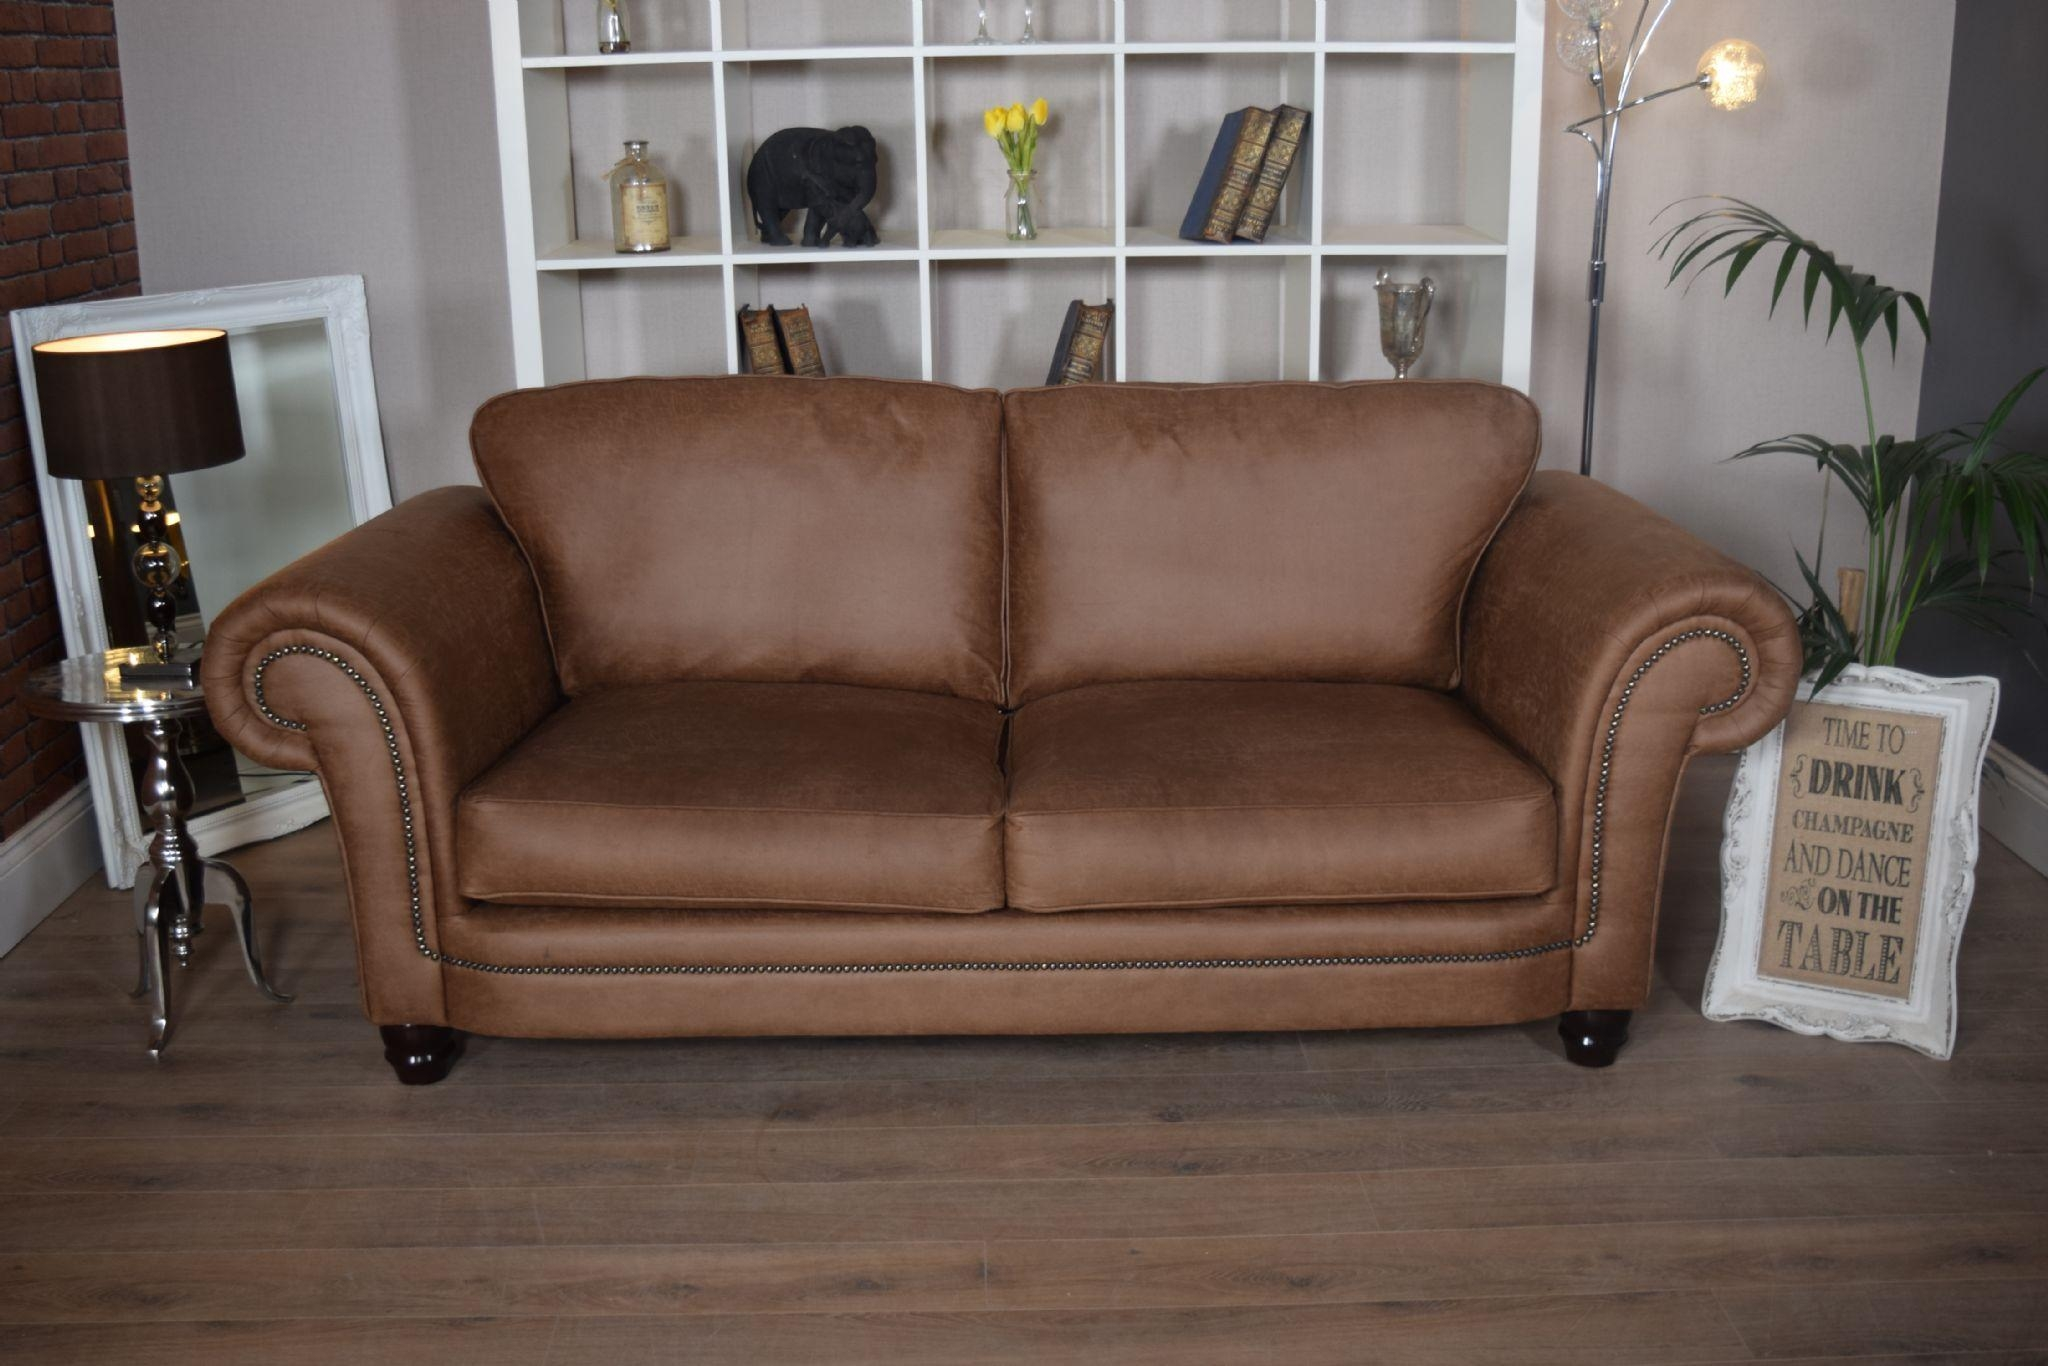 Set Abbey Downton 3 Seater Sofa & Large Cuddle Chair – Tan Fitted Back With Regard To 3 Seater Sofa And Cuddle Chairs (Image 4 of 20)